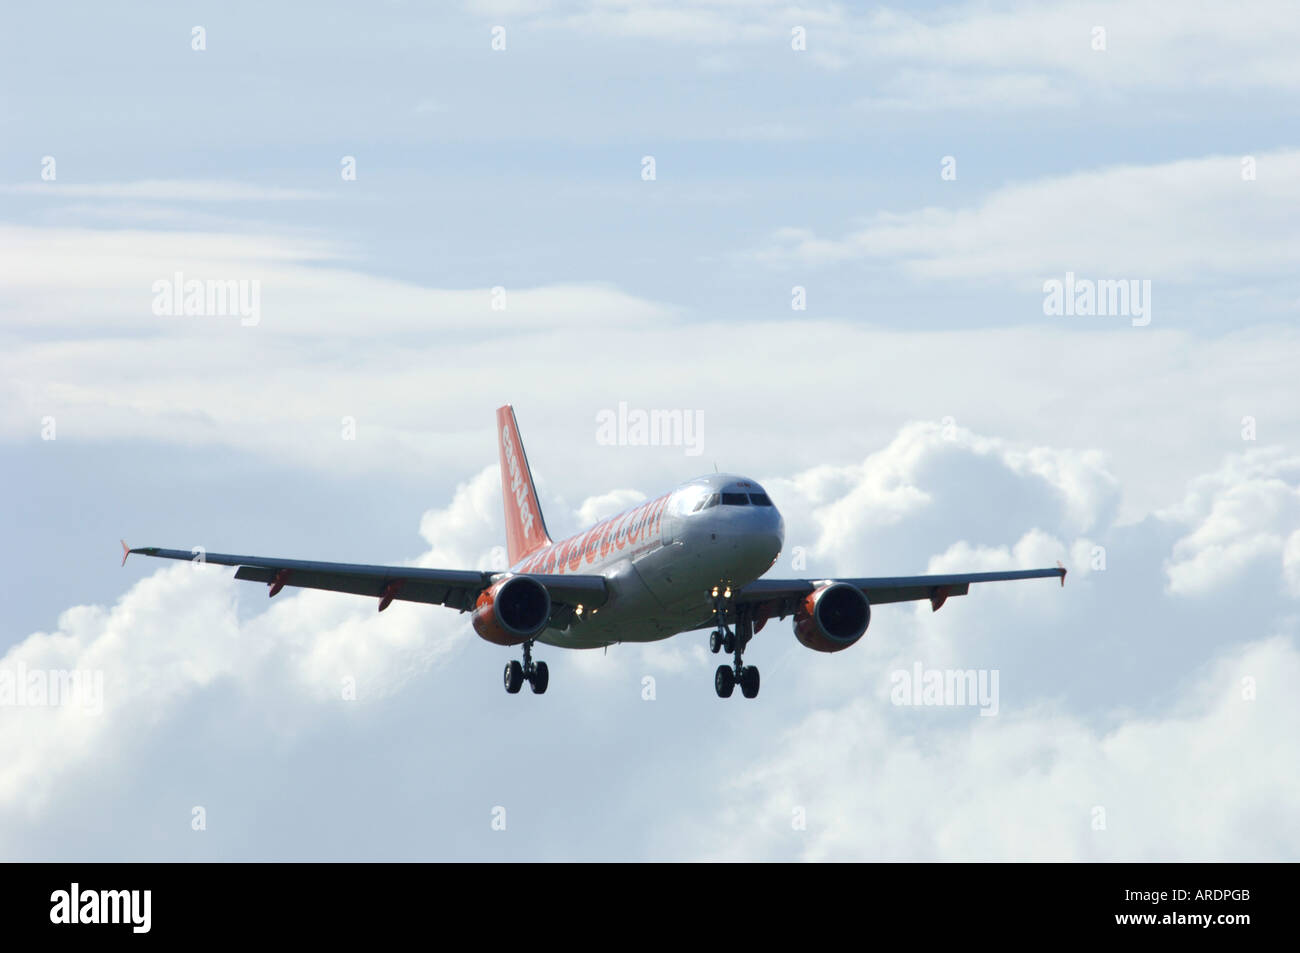 Easy Jet 737-700 London Flight Arriving at Inverness Dalcross Airport.  XAV 3666-354 - Stock Image